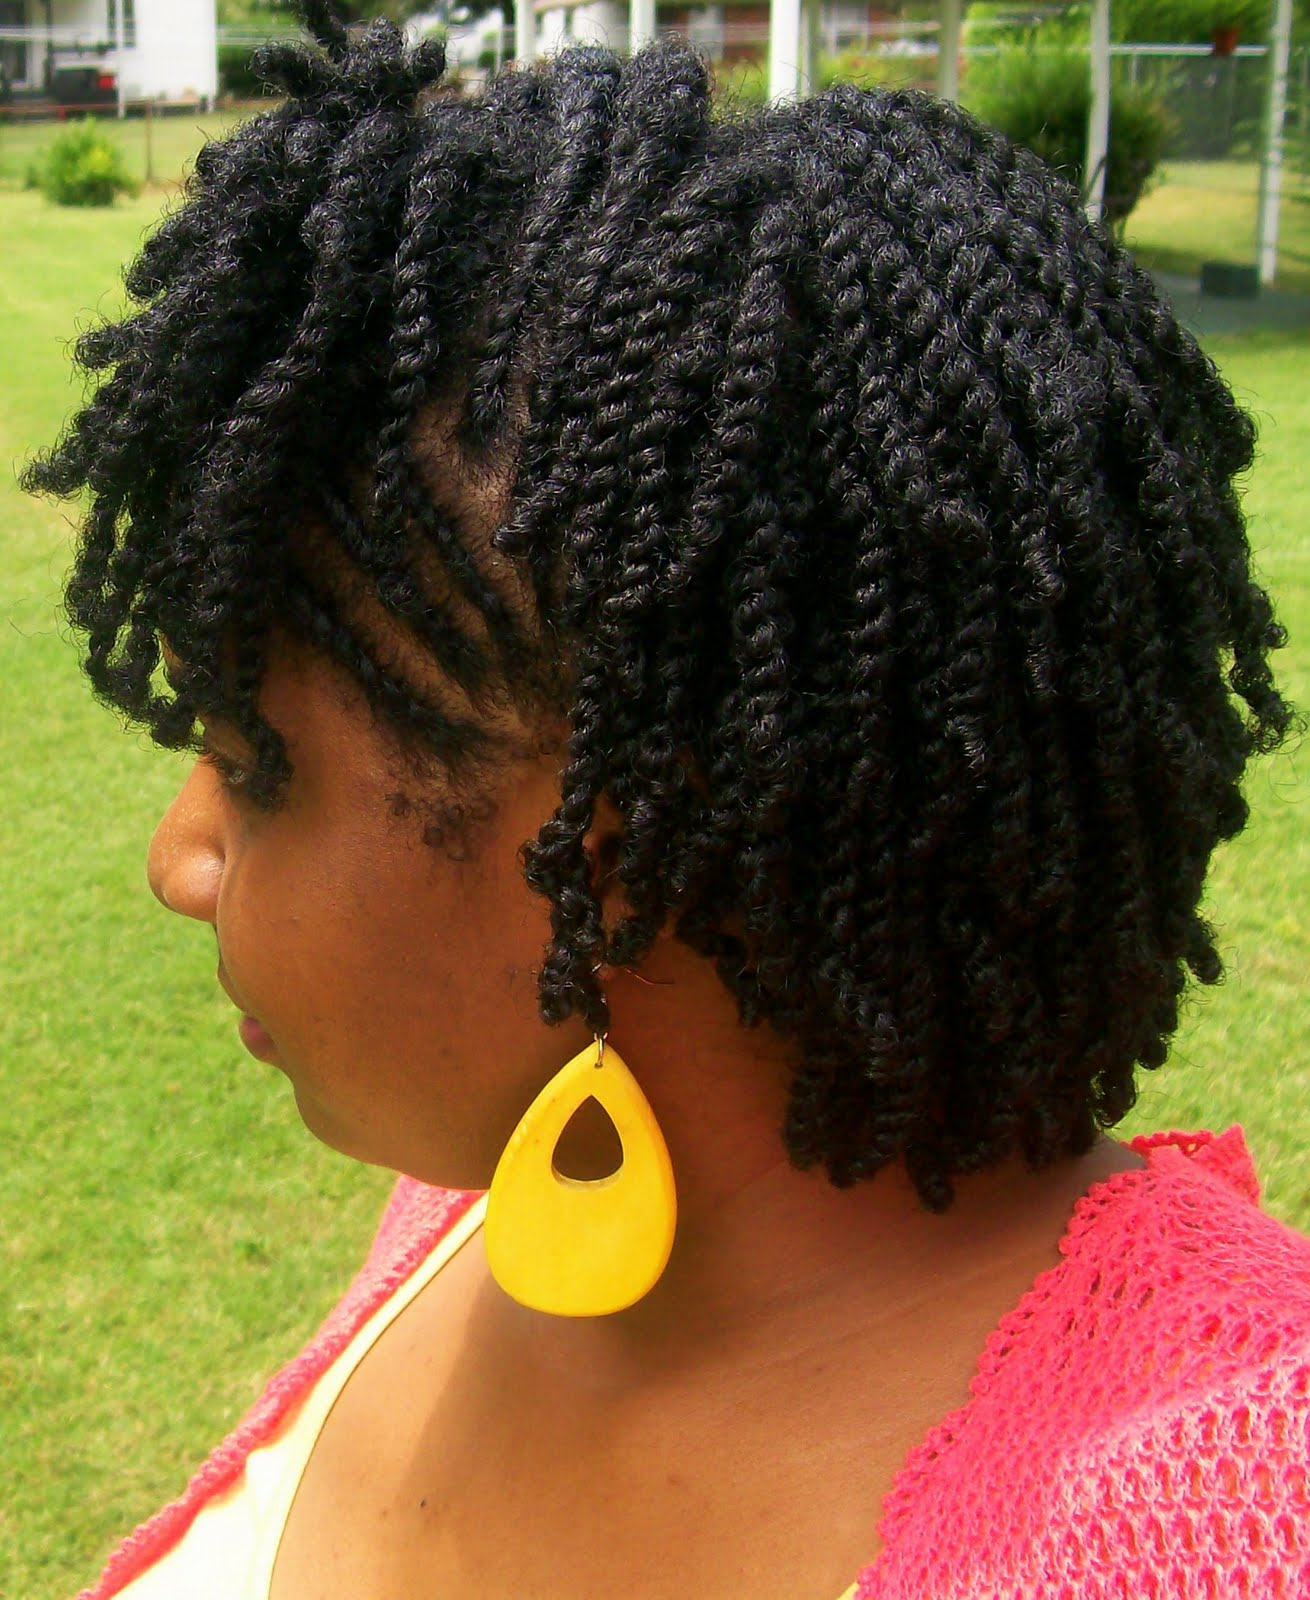 FroStoppa: Ms-gg's natural hair journey and natural hair blog: Swirled Flat twists with mini ...